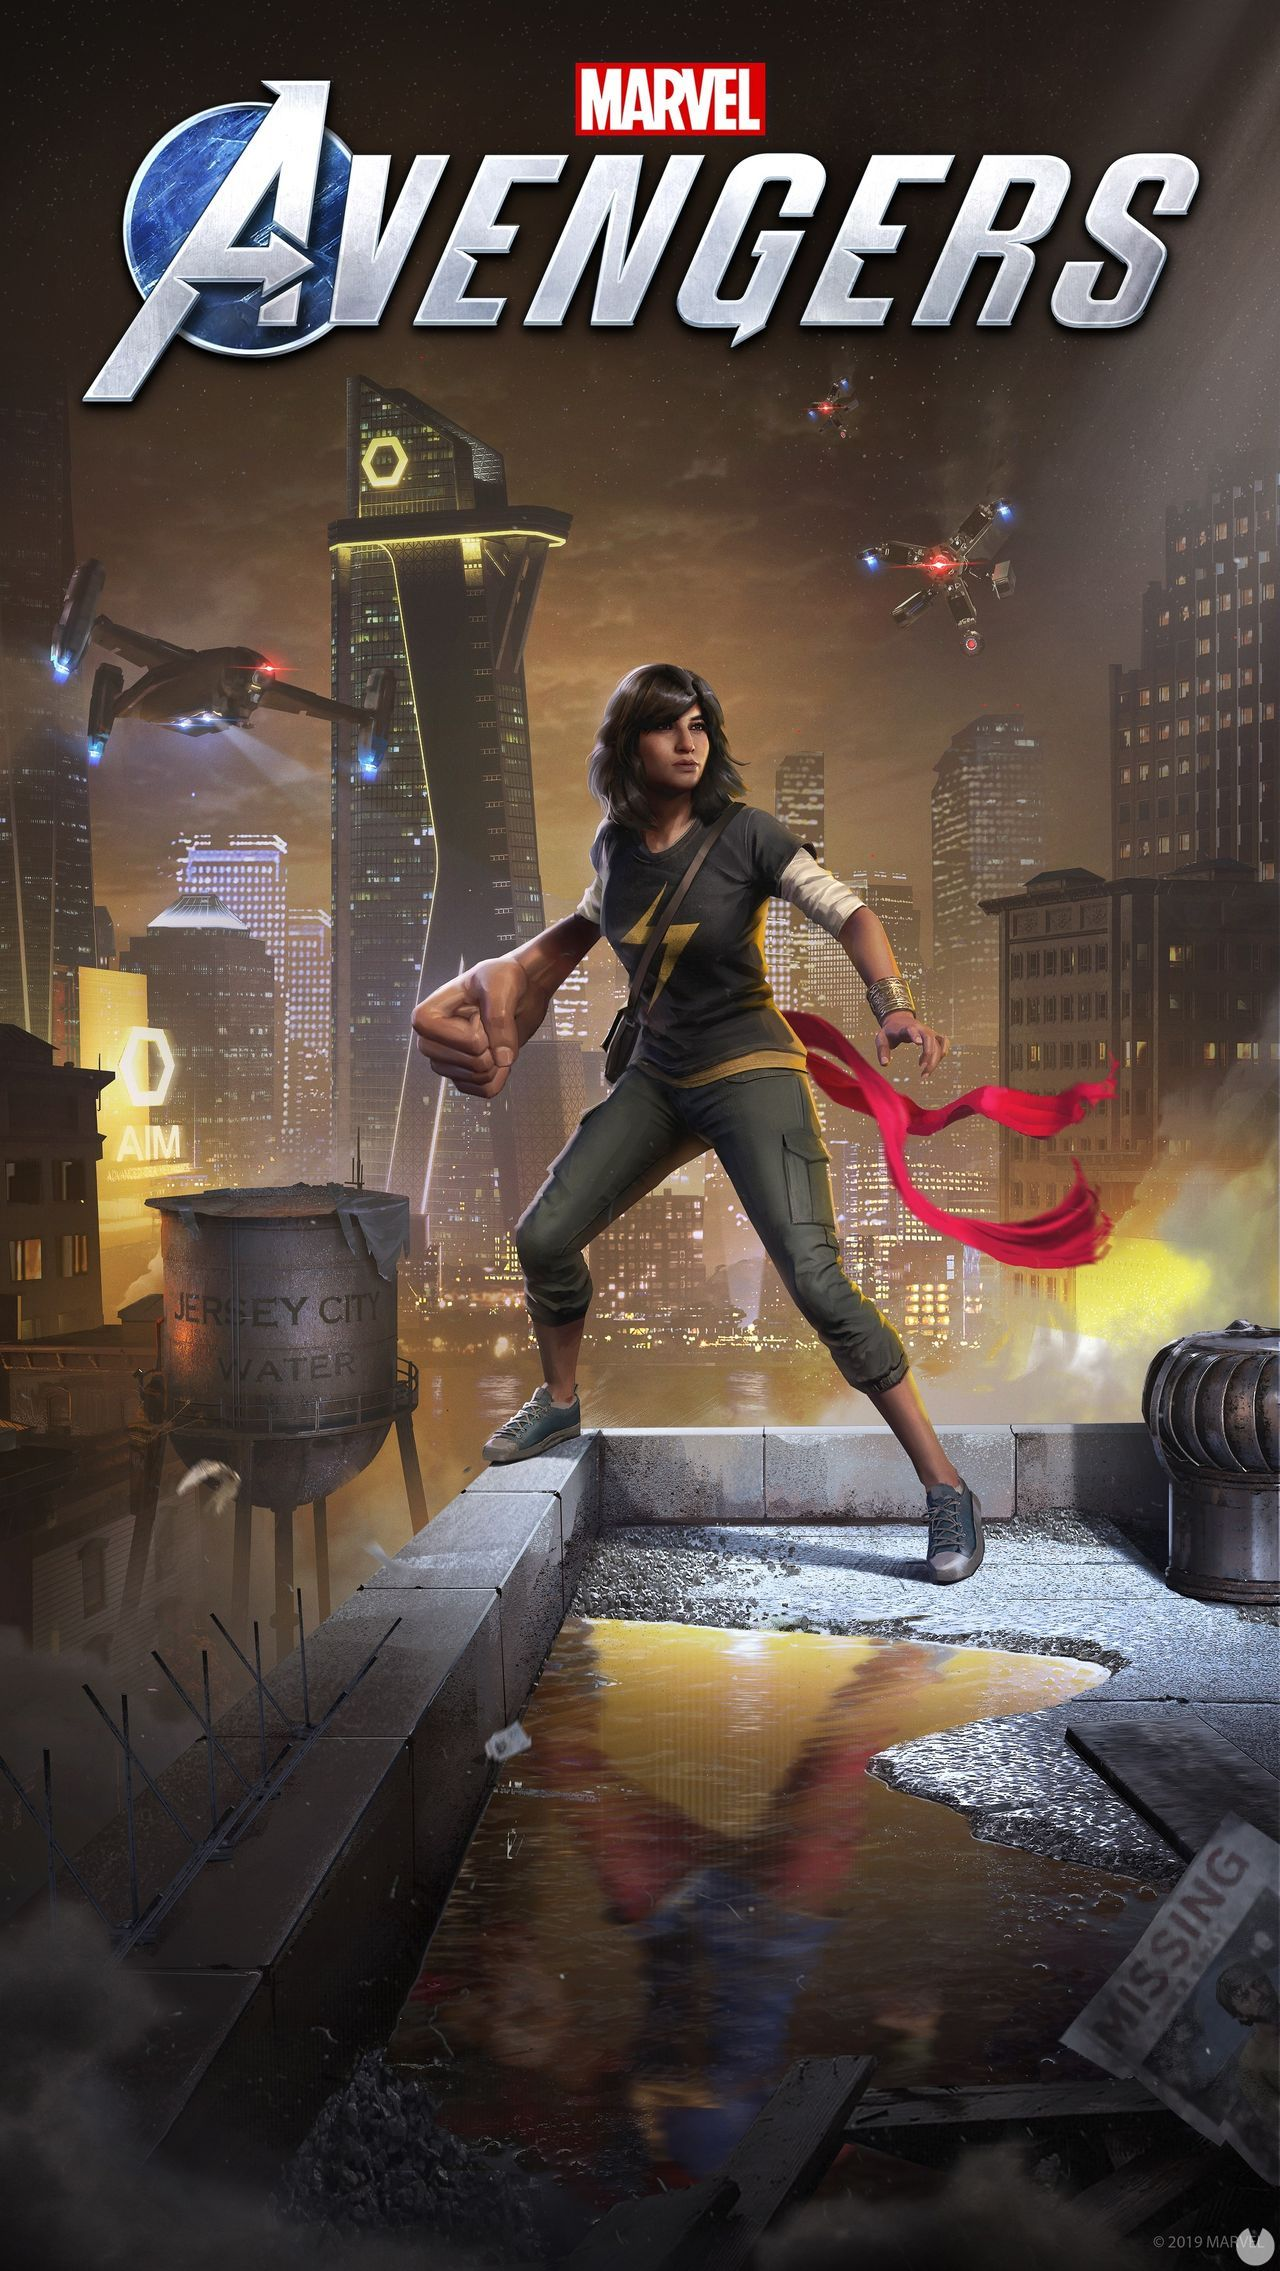 Marvel's Avengers confirms Kamala Khan and the sample in action in new trailer